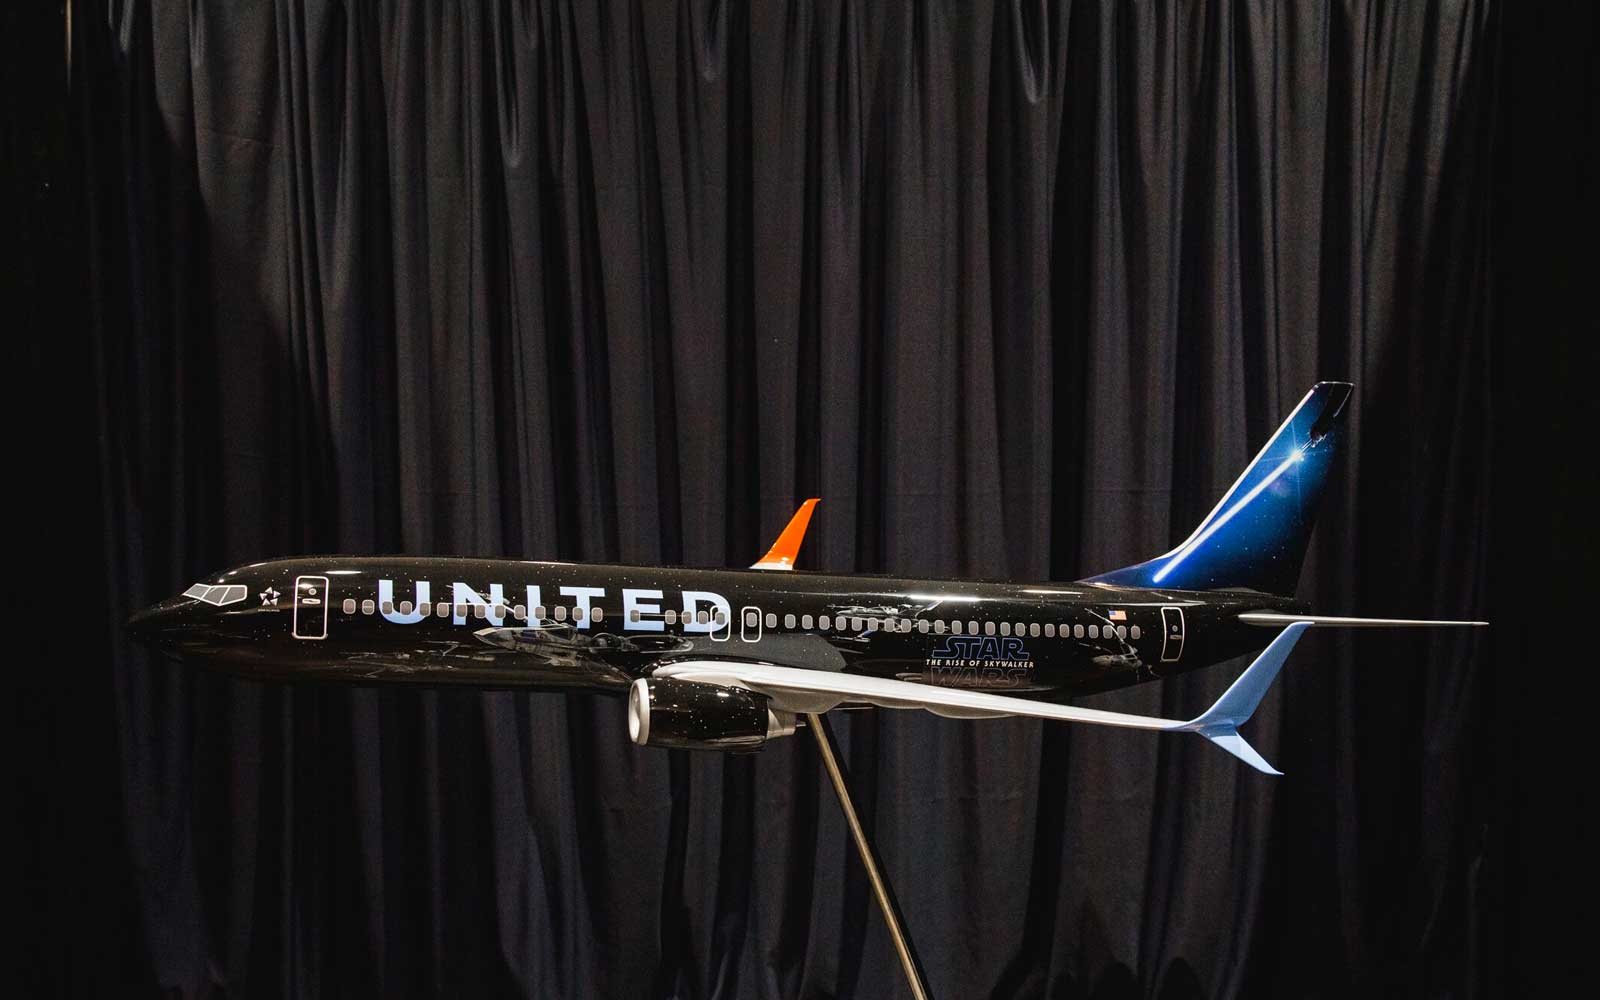 You Can Travel to a Galaxy Far, Far Away in United Airlines' New, 'Star Wars' Themed Plane